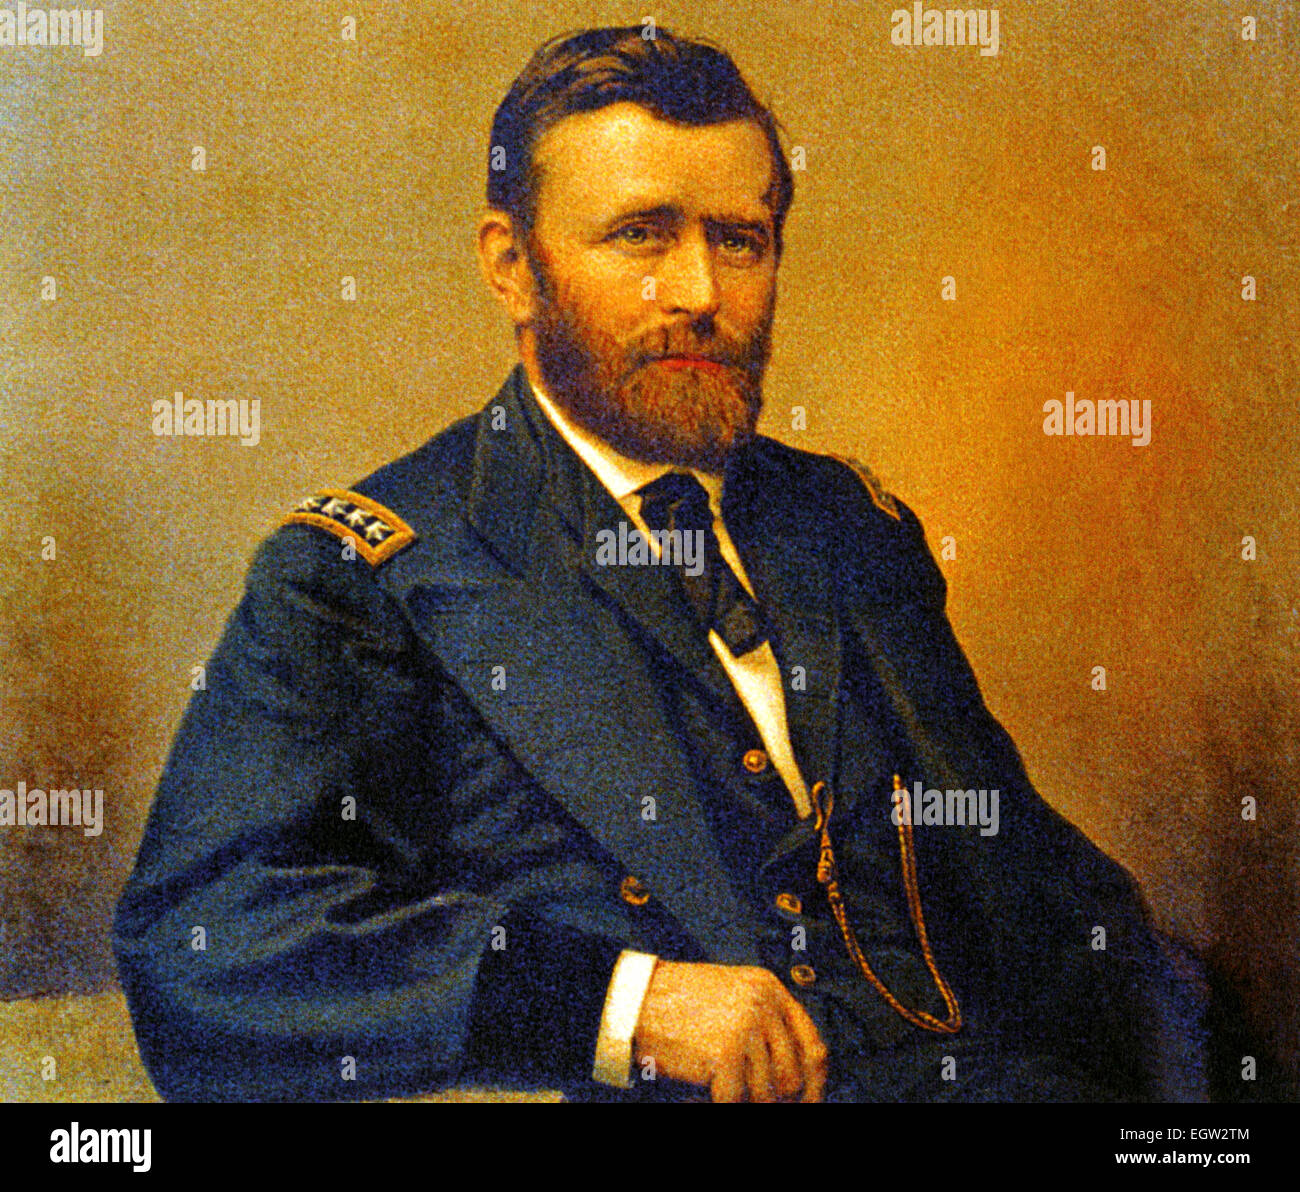 ULYSSES S. GRANT (1822-1885) As Commander of Union Forces in the American Civil War - Stock Image